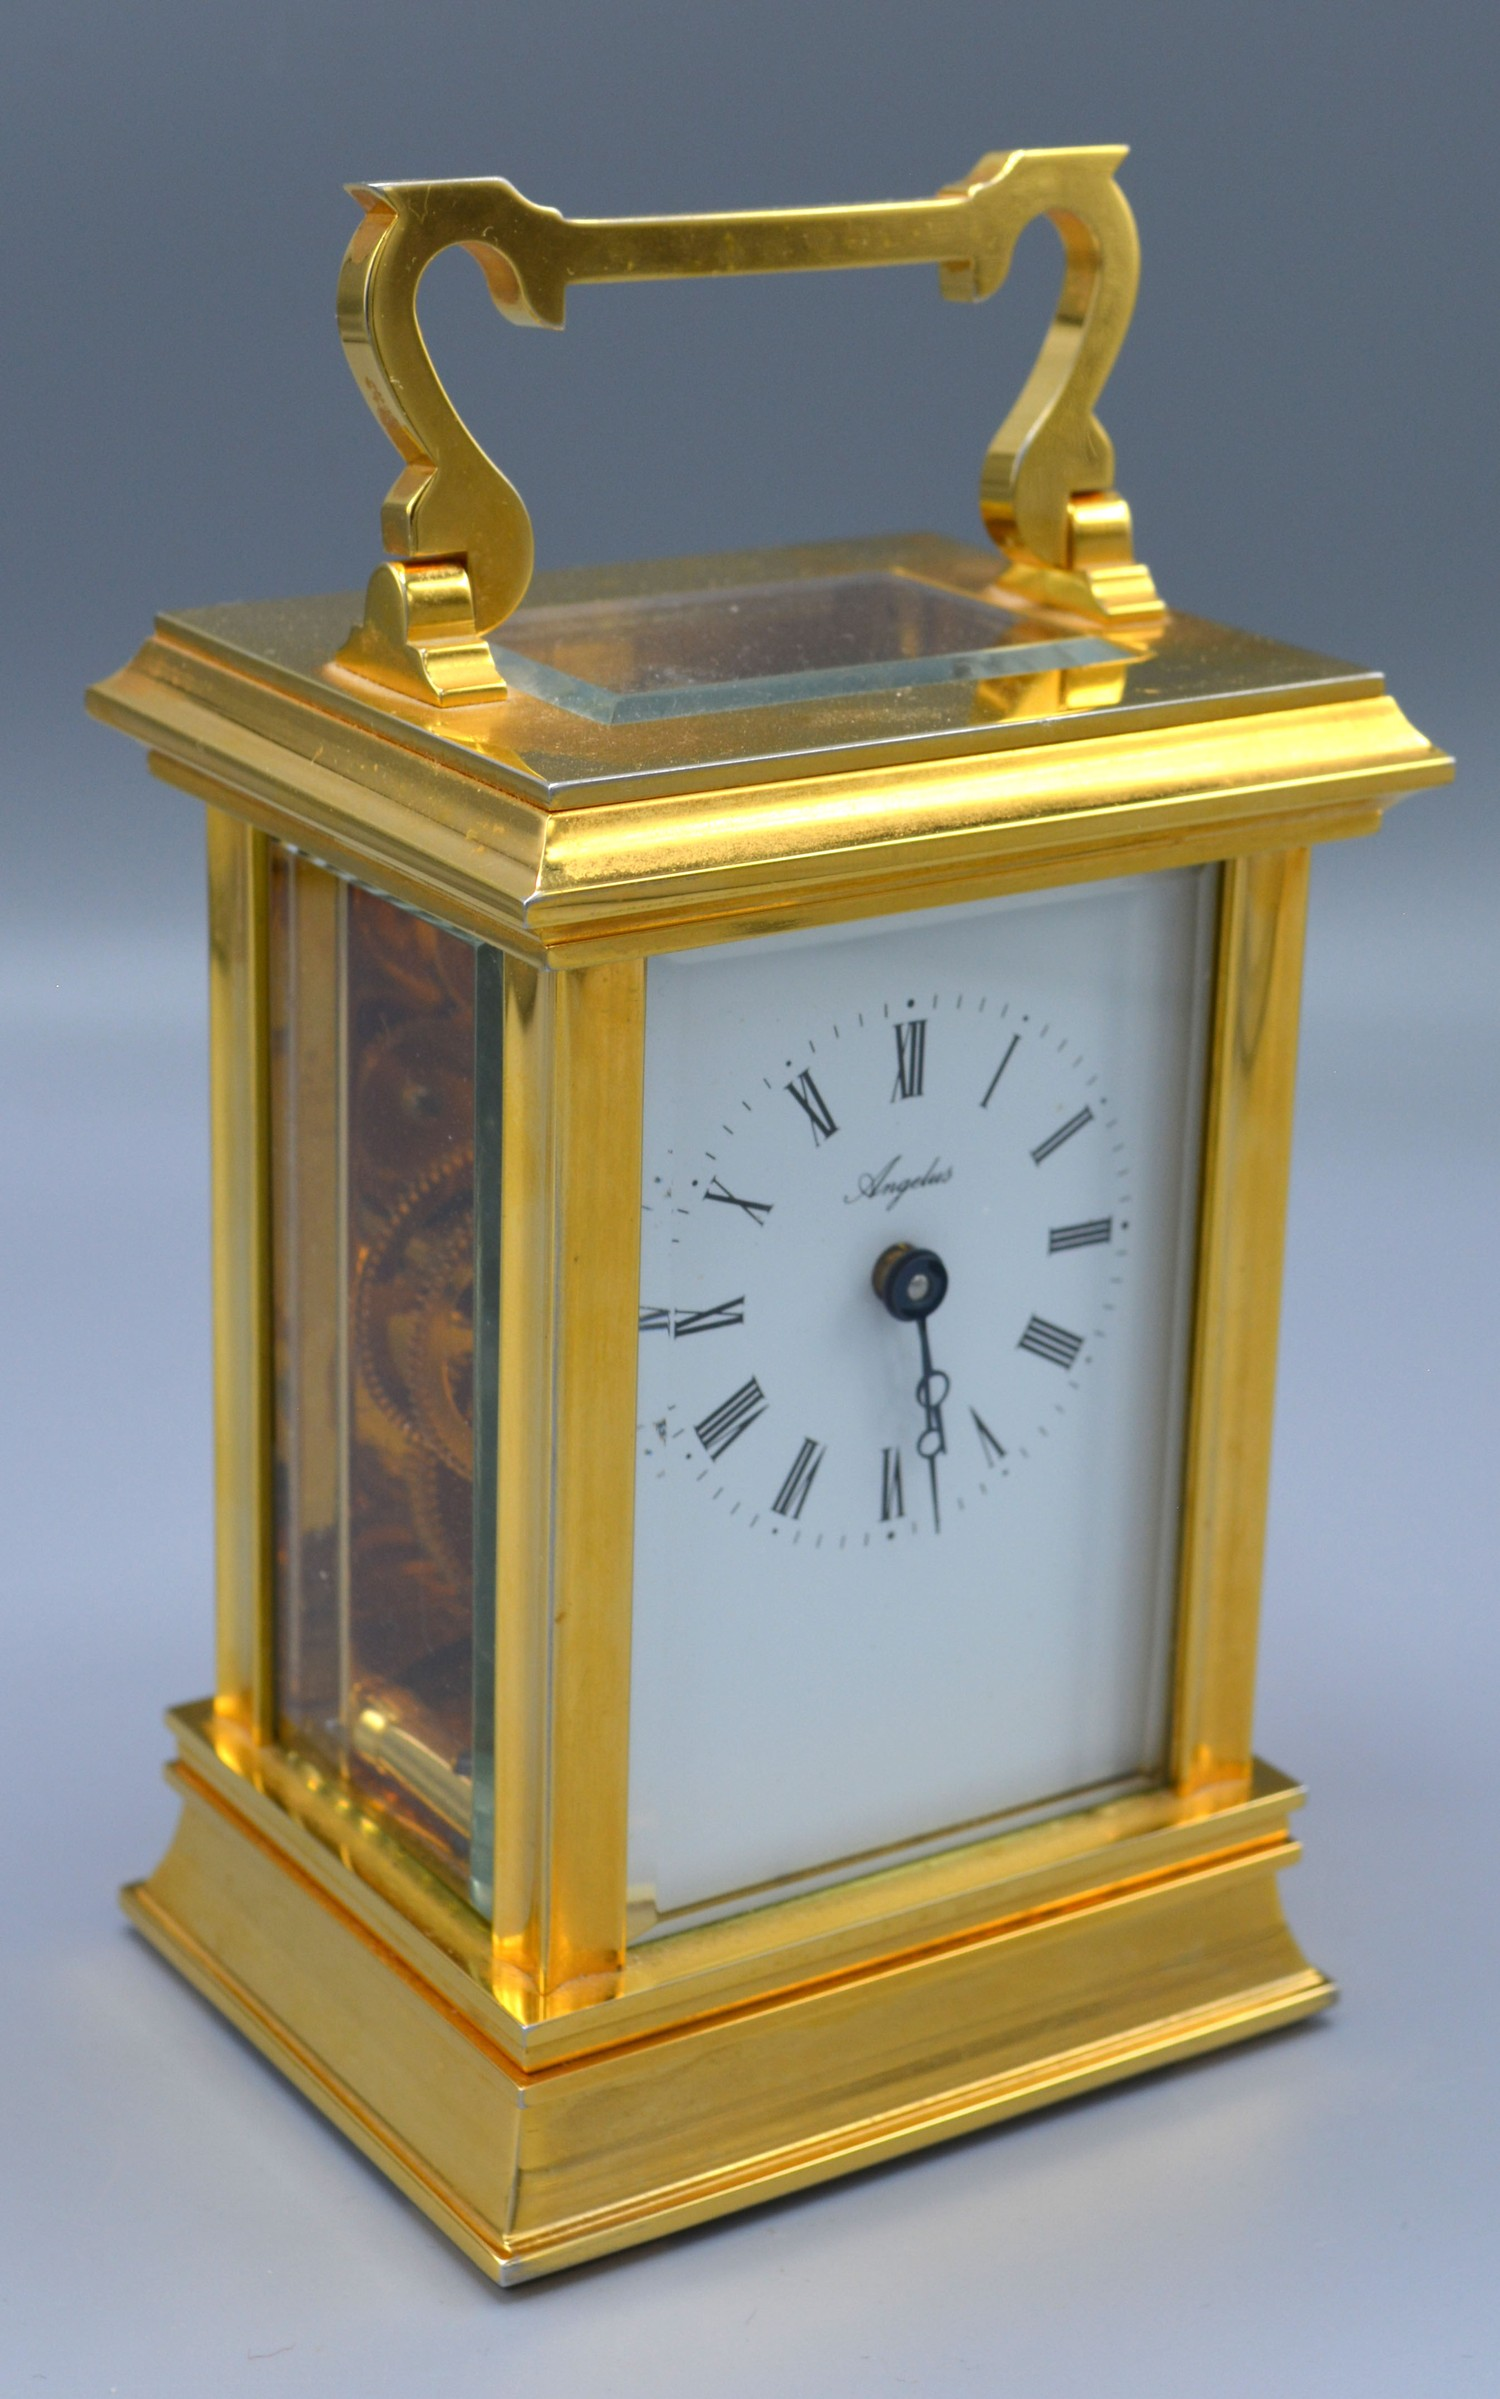 A 20th Century Heavy Brass Carriage Clock, the enamel dial with Roman numerals and inscribed Angelus